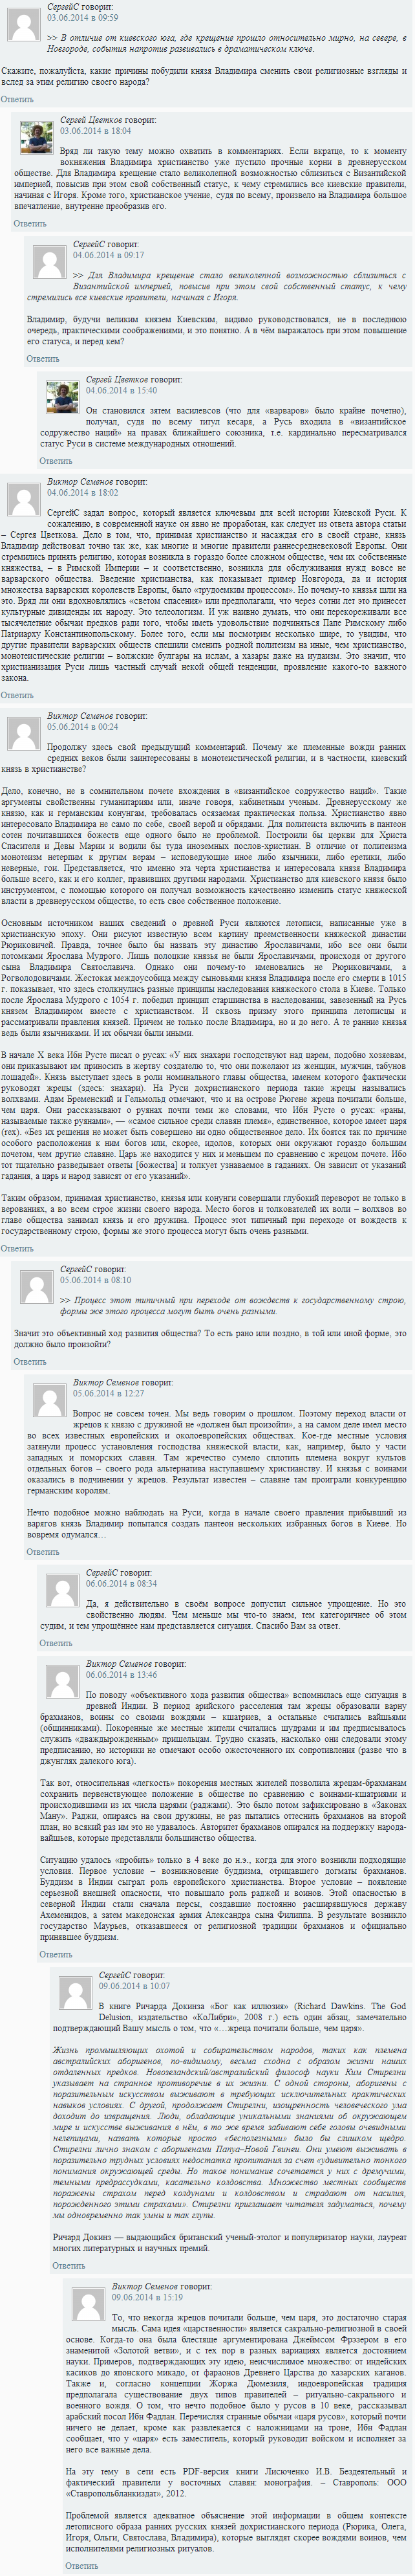 screenshot-pereformat.ru 2014-09-06 15-02-43